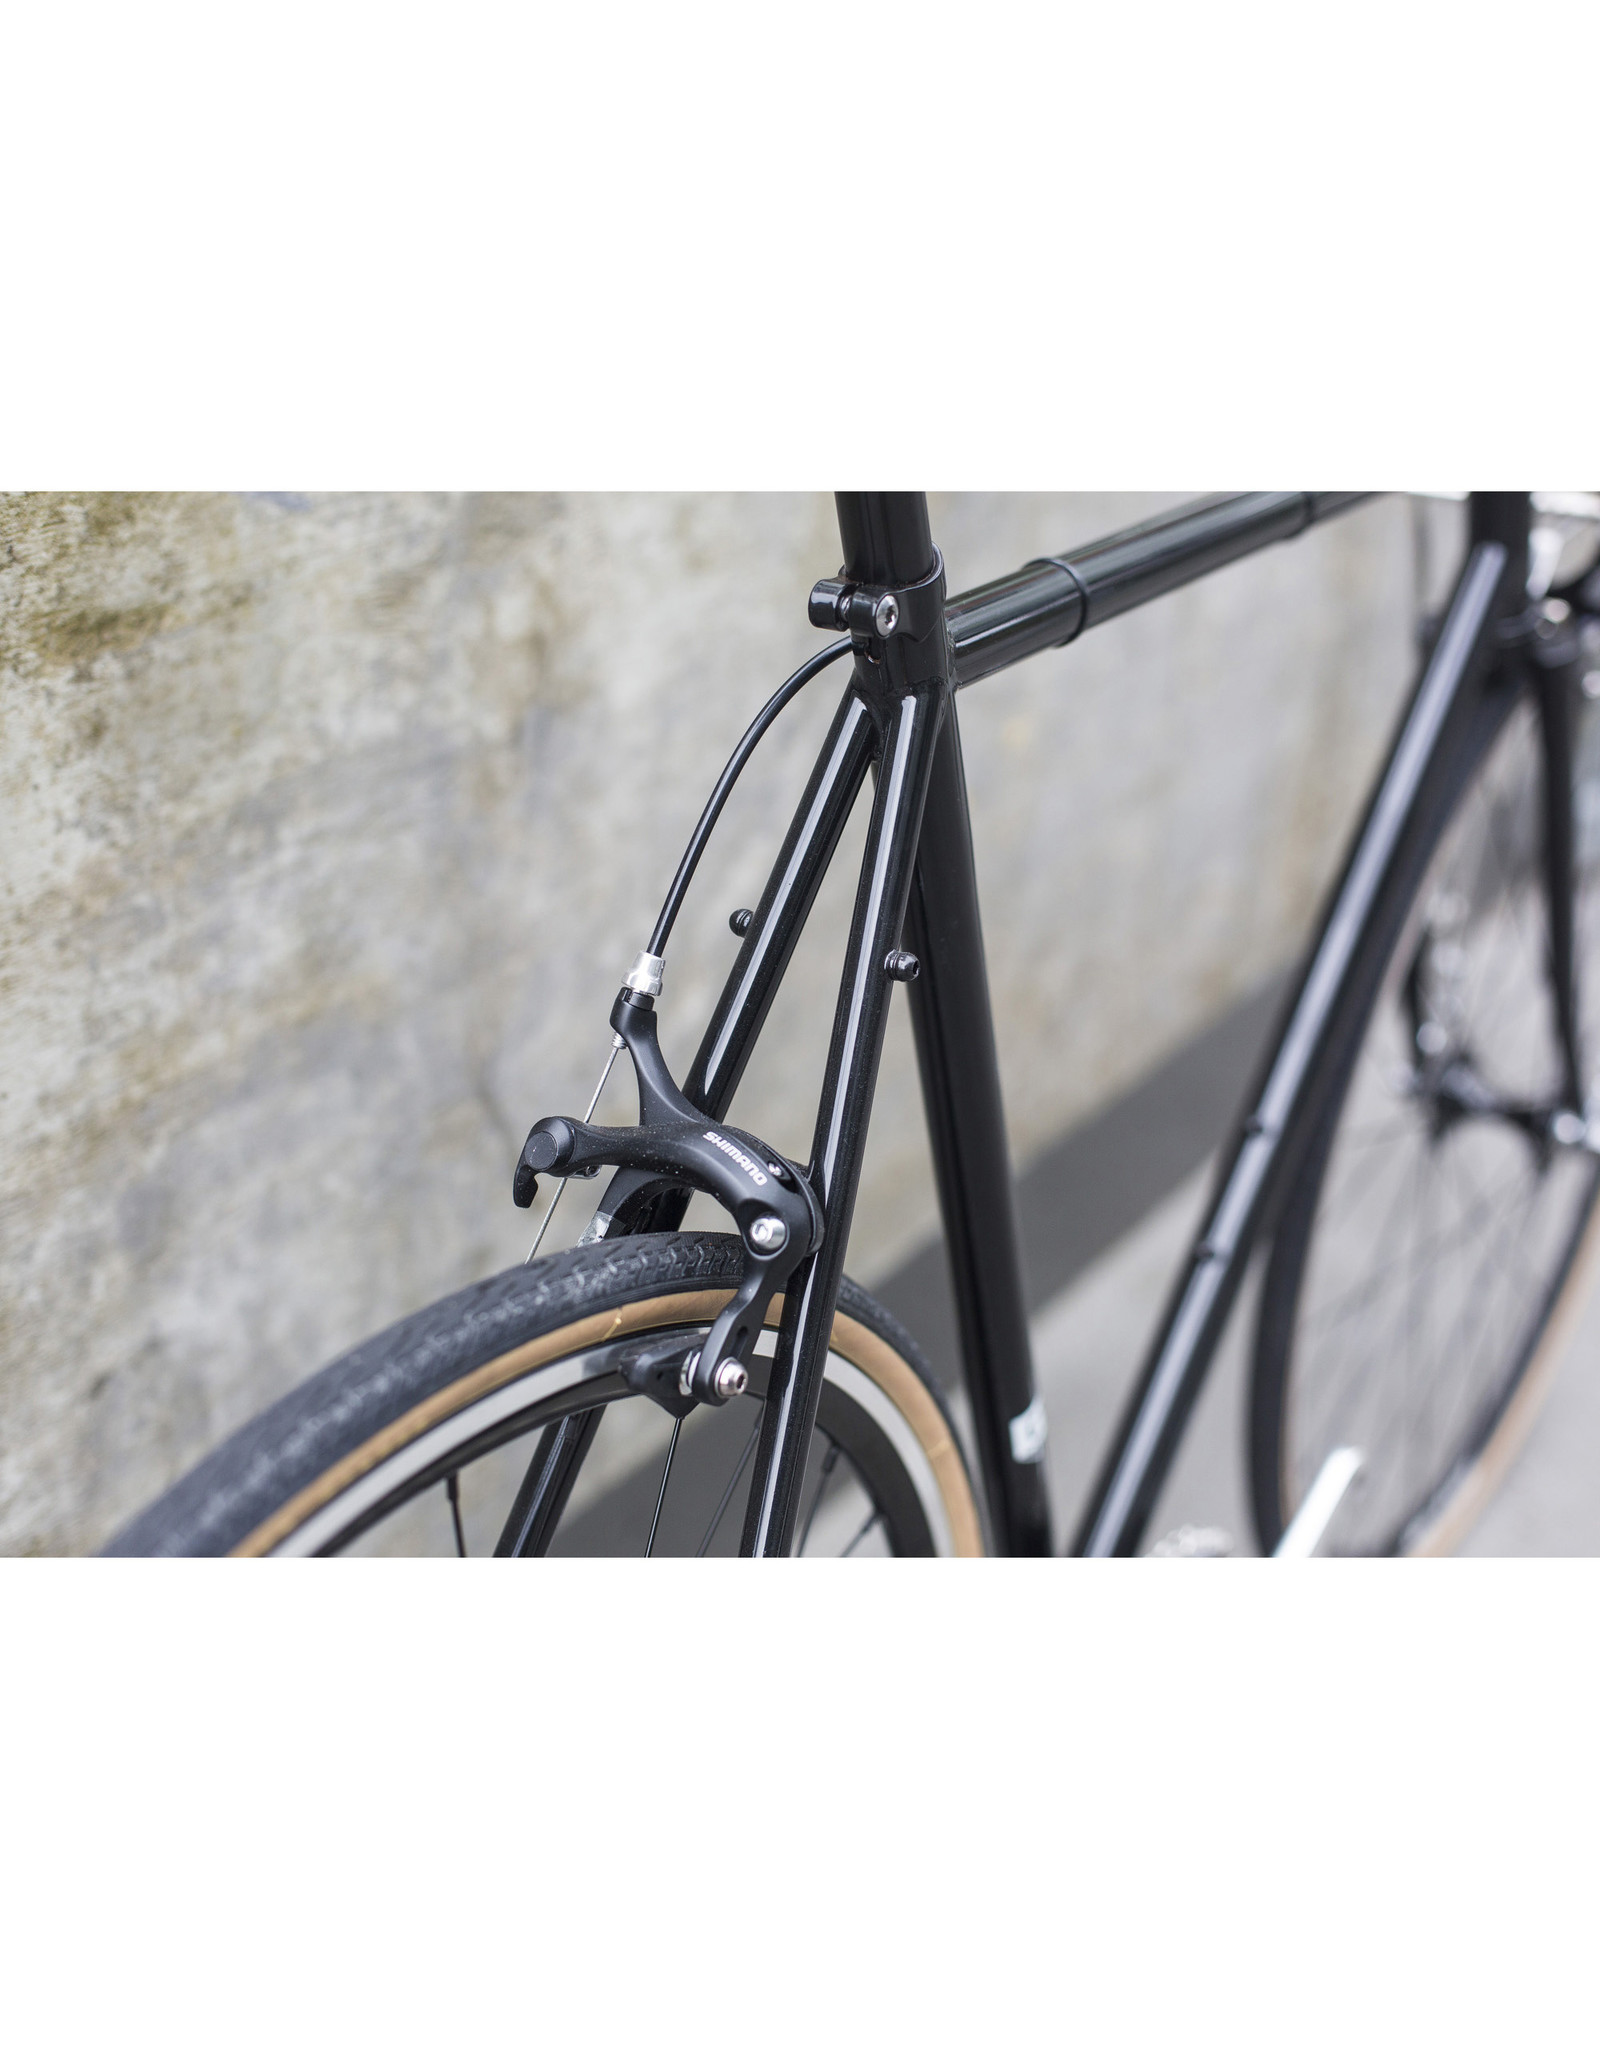 Seabass Cycles Brother Cycles - Allday - Black - Custom Build